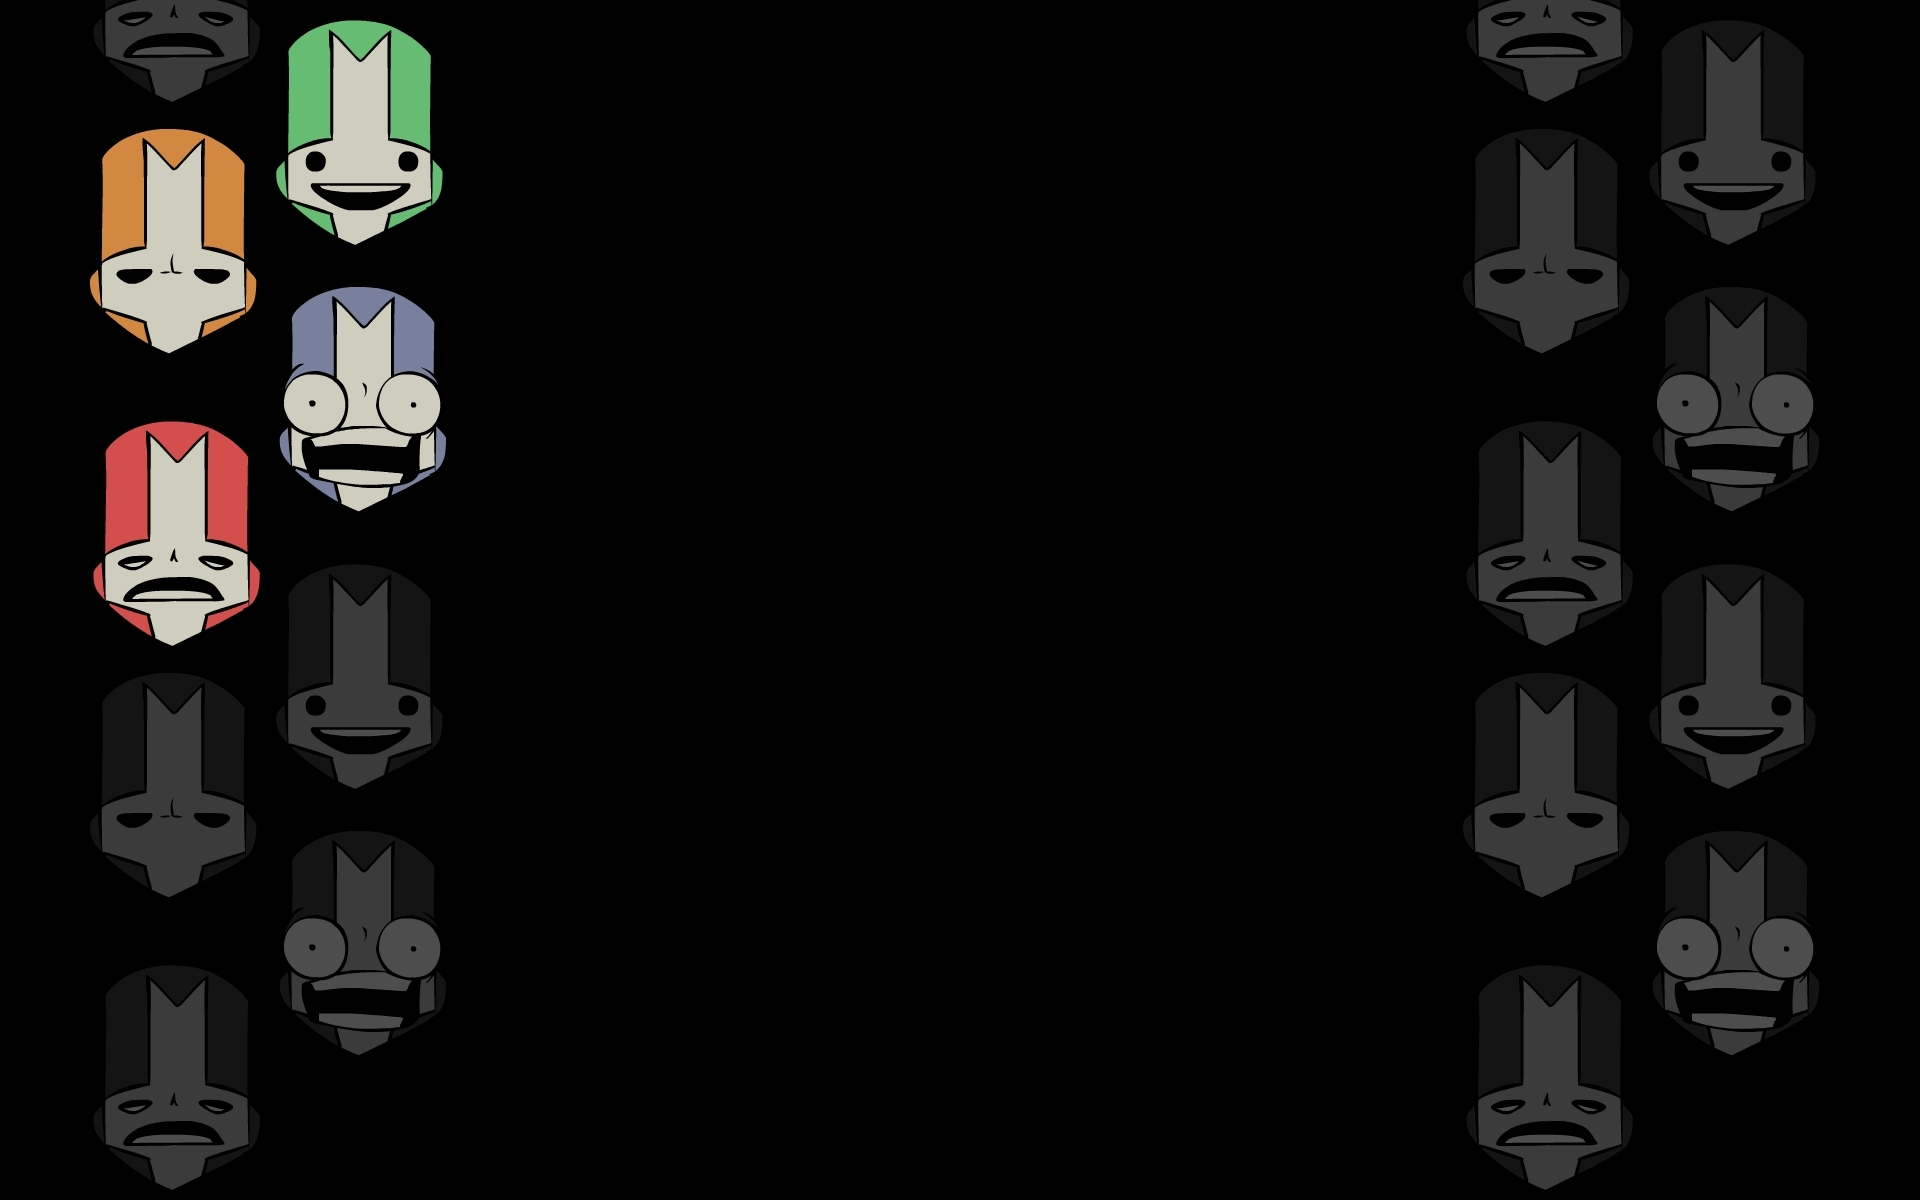 Video Game Castle Crashers 1920x1200